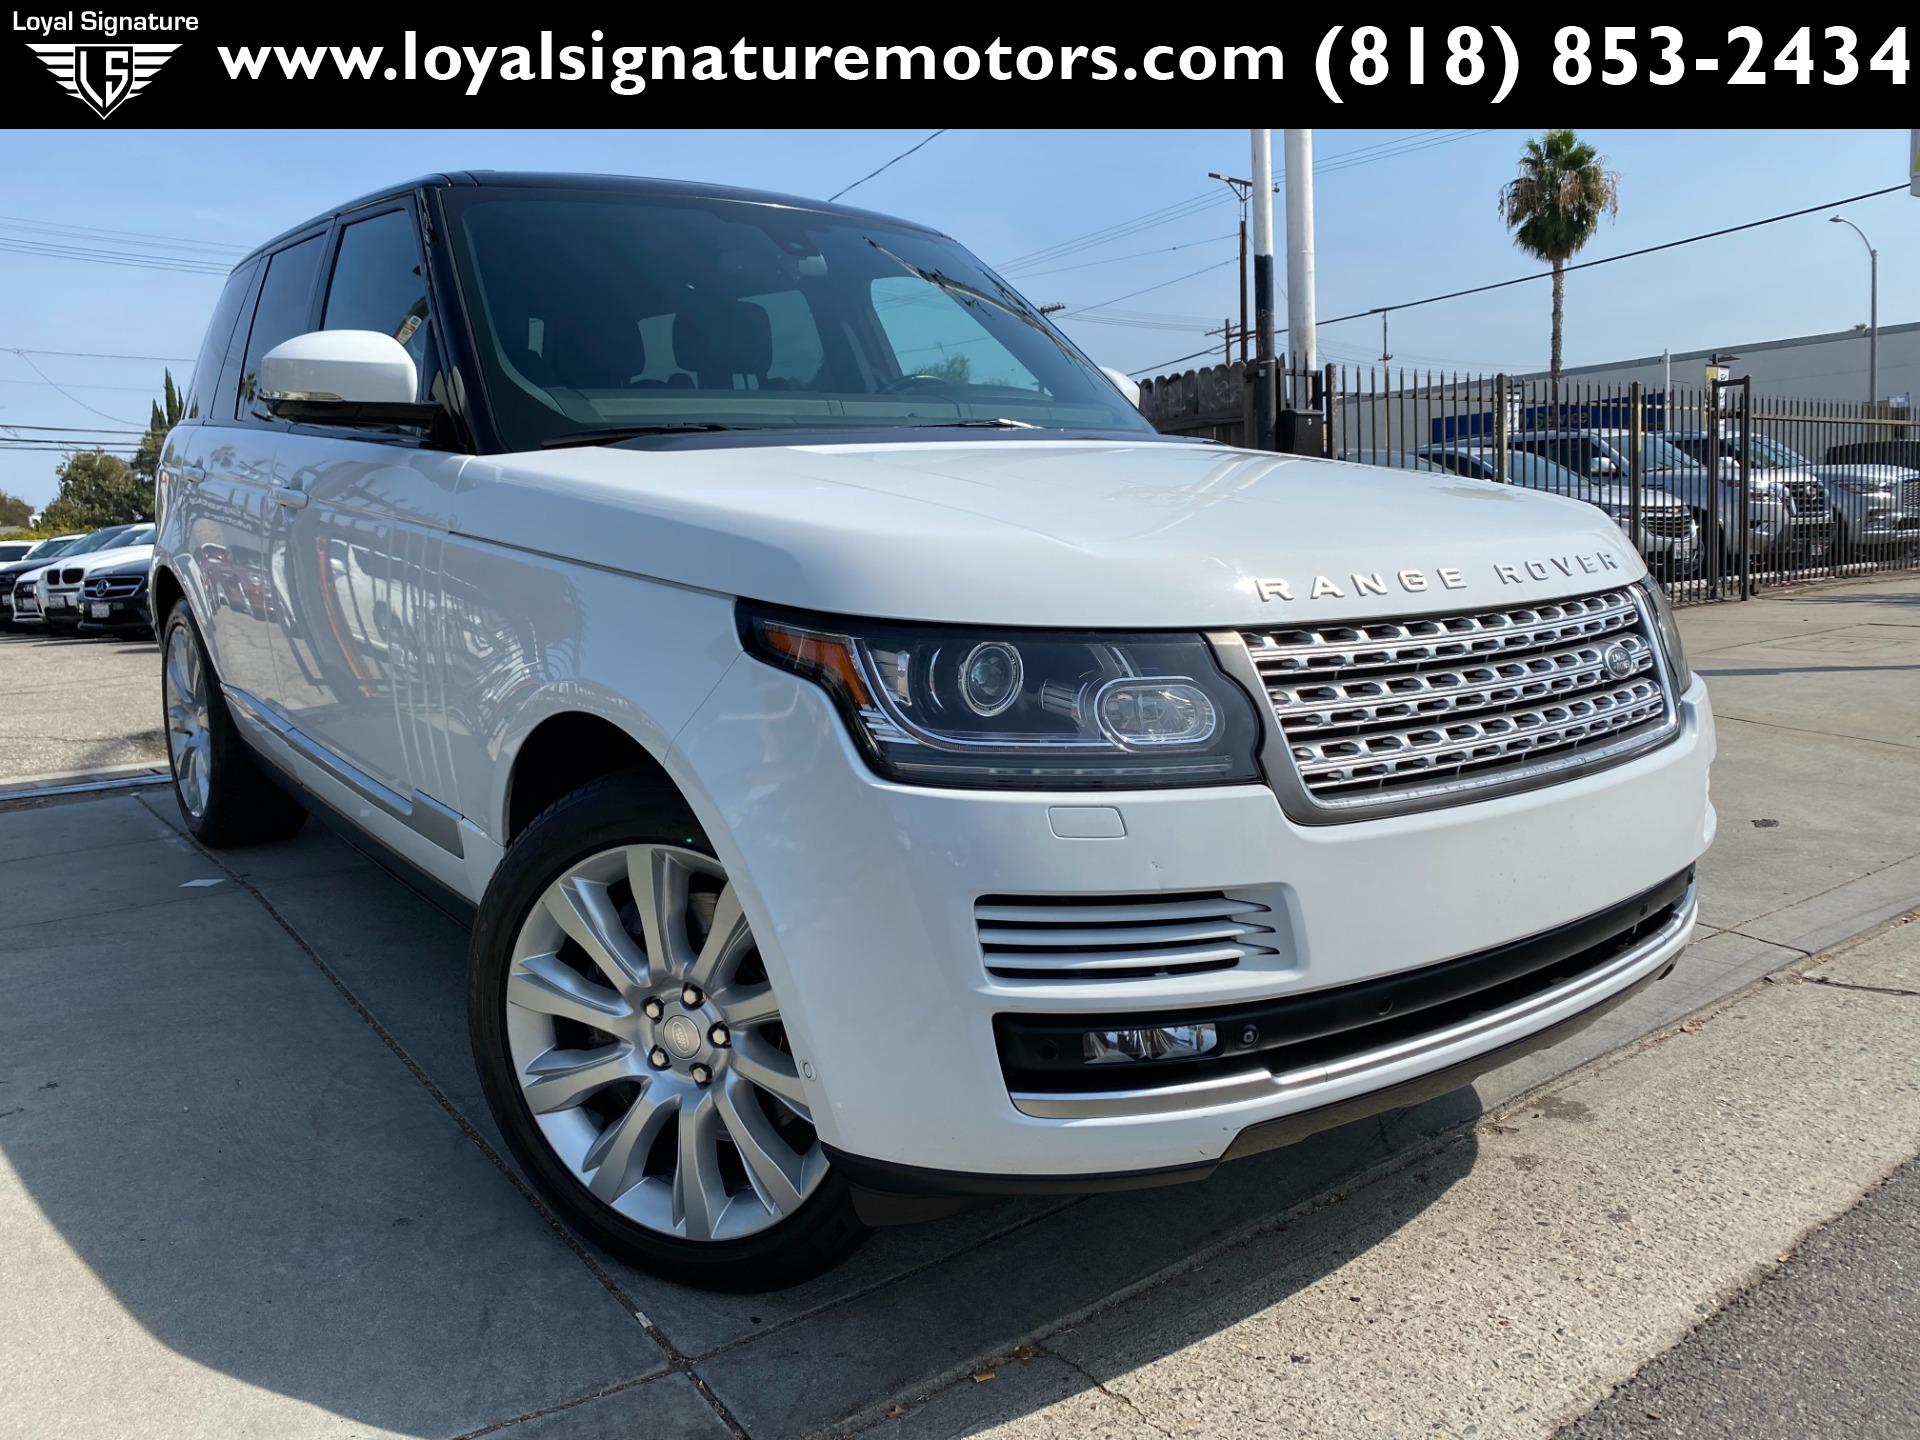 Used 2014 Land Rover Range Rover Supercharged   Van Nuys, CA